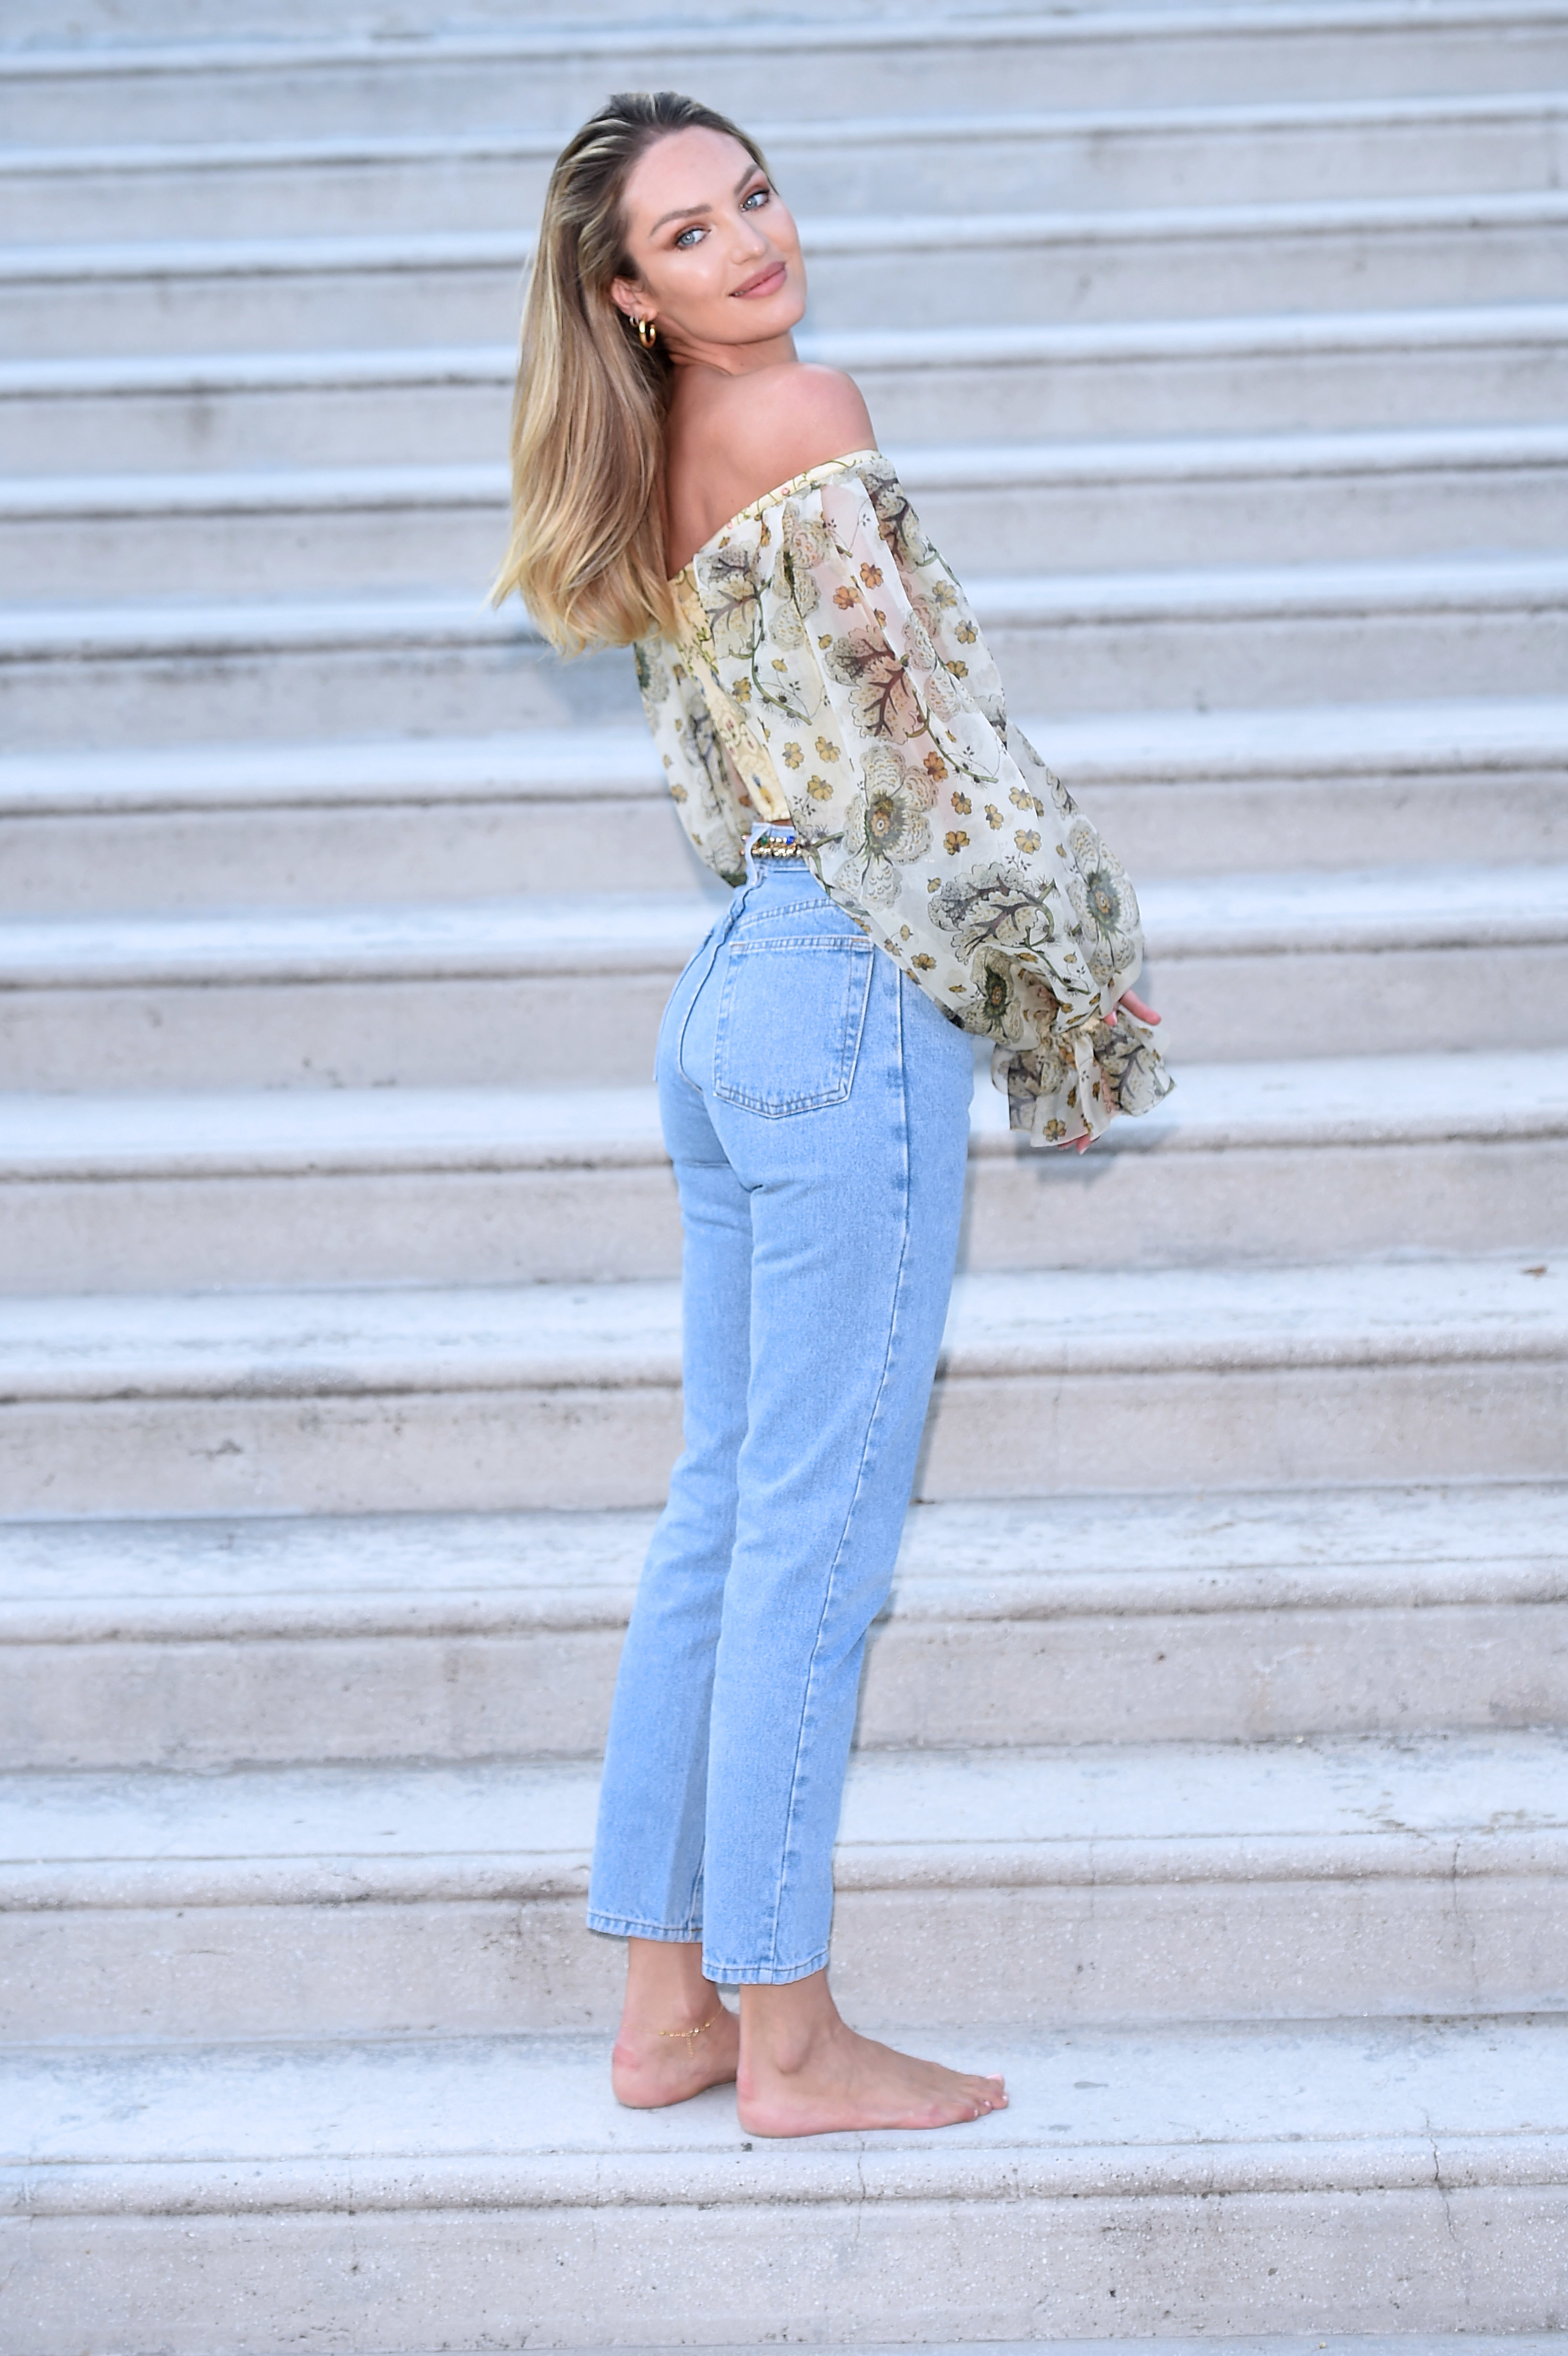 65 Sexy Candice Swanepoel Booty Pictures Are Truly Entrancing And Wonderful - GEEKS ON COFFEE